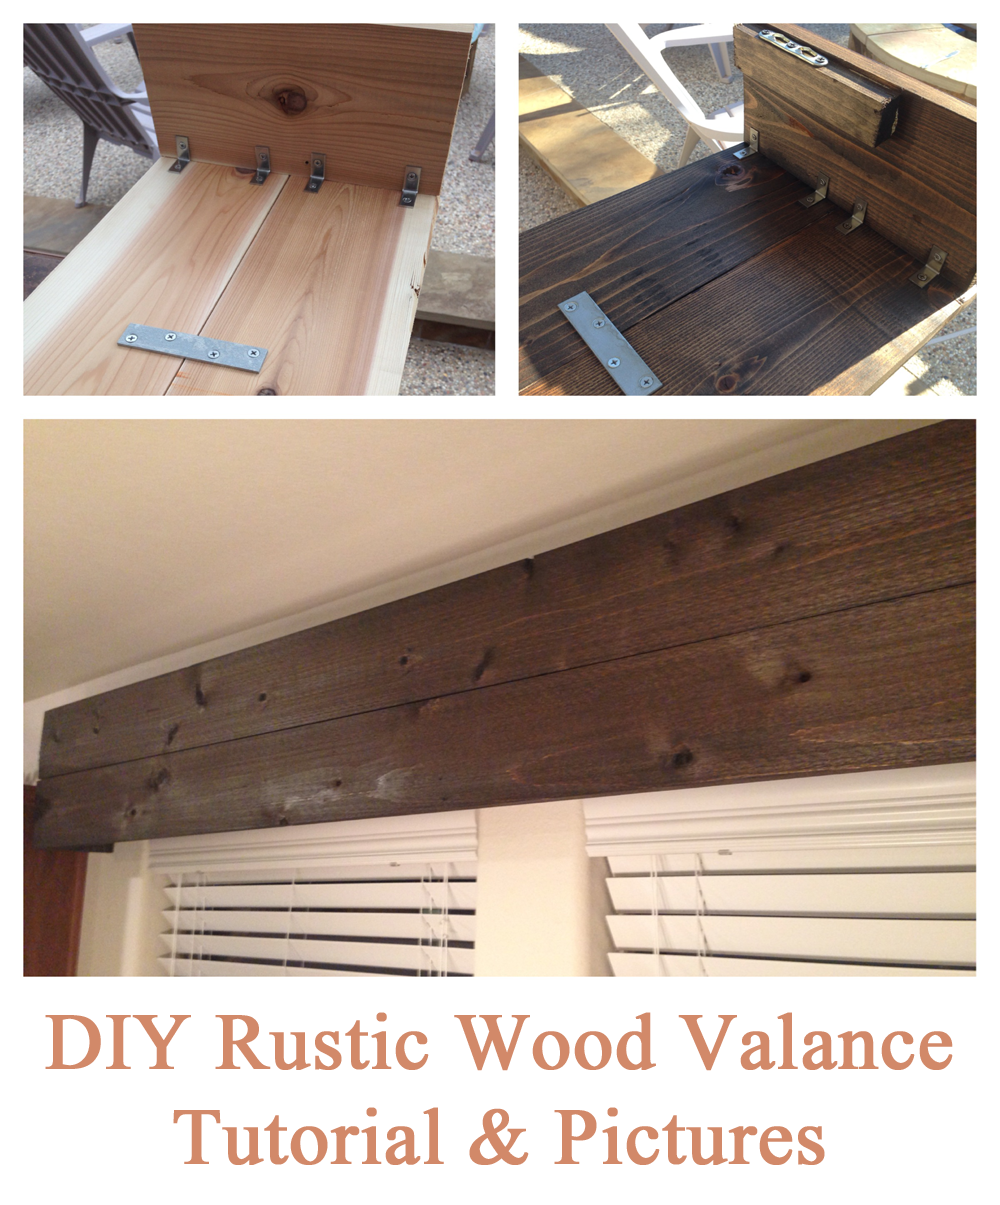 Easy Diy Tutorial For Creating A Rustic Wood Valance The